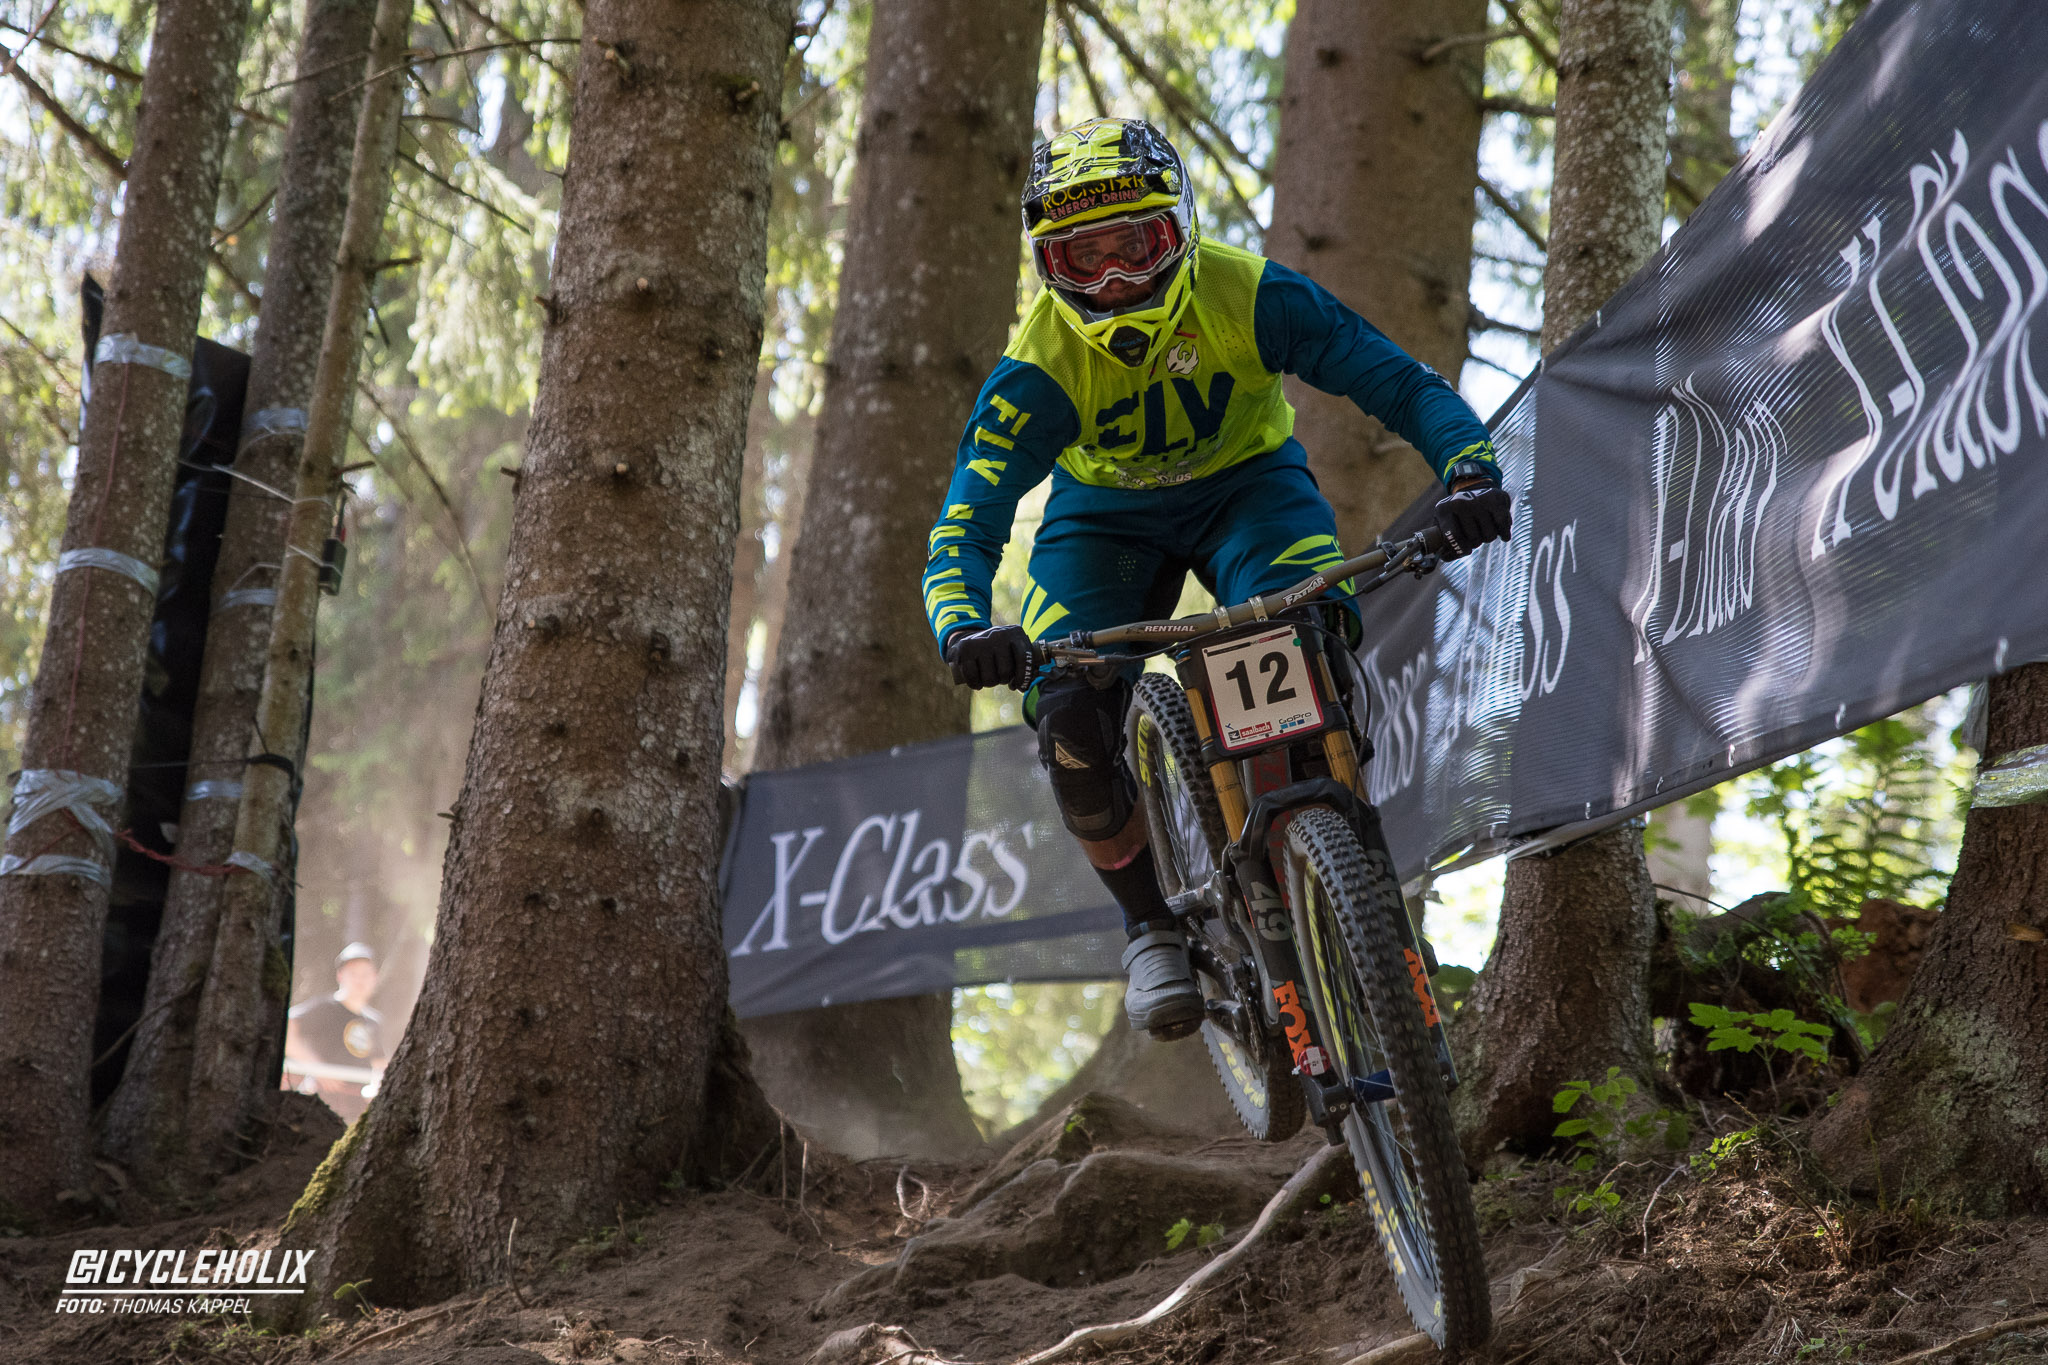 2019 Downhill Worldcup Leogang Finale Action 21